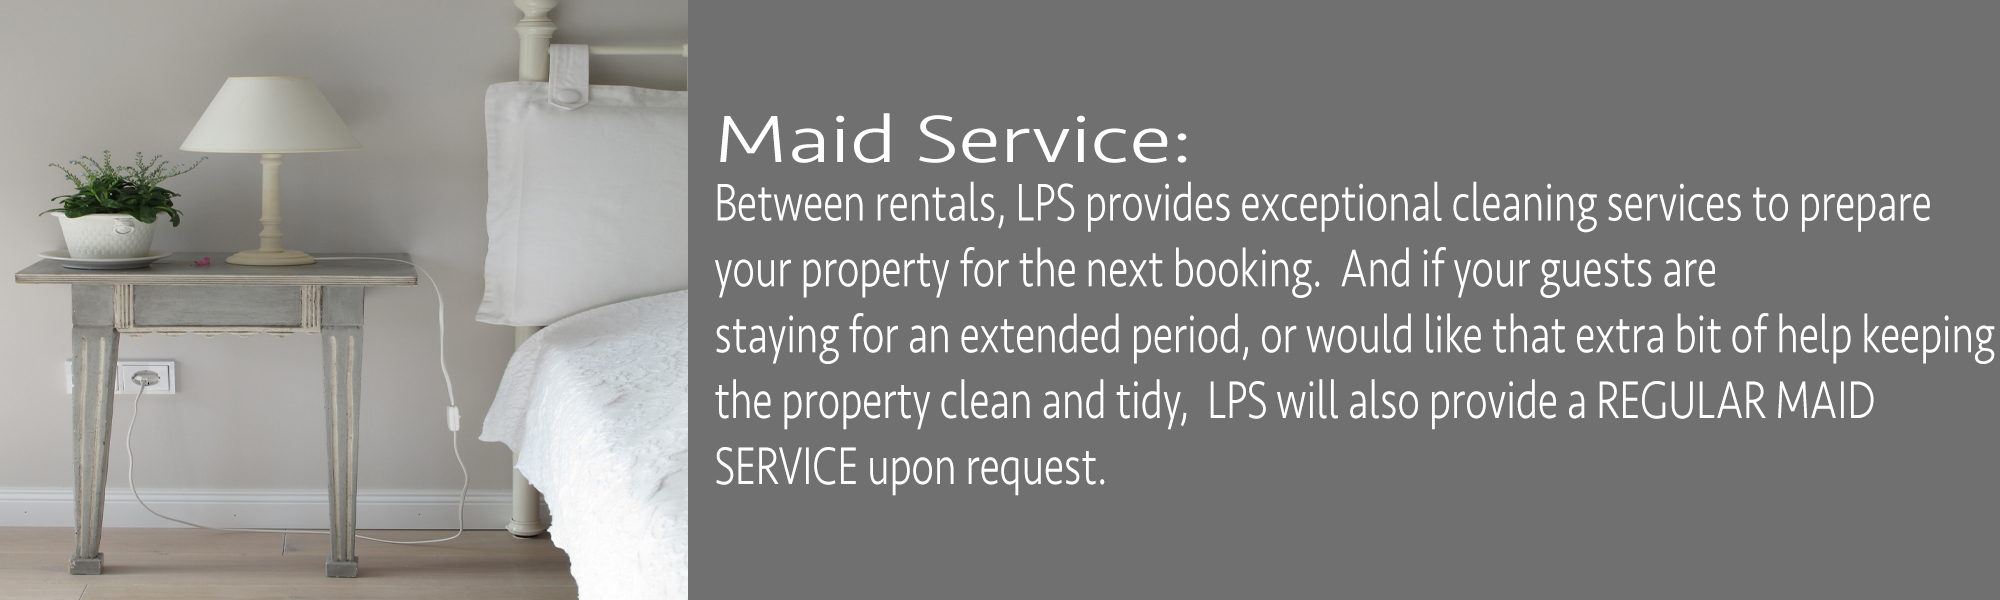 MaidService